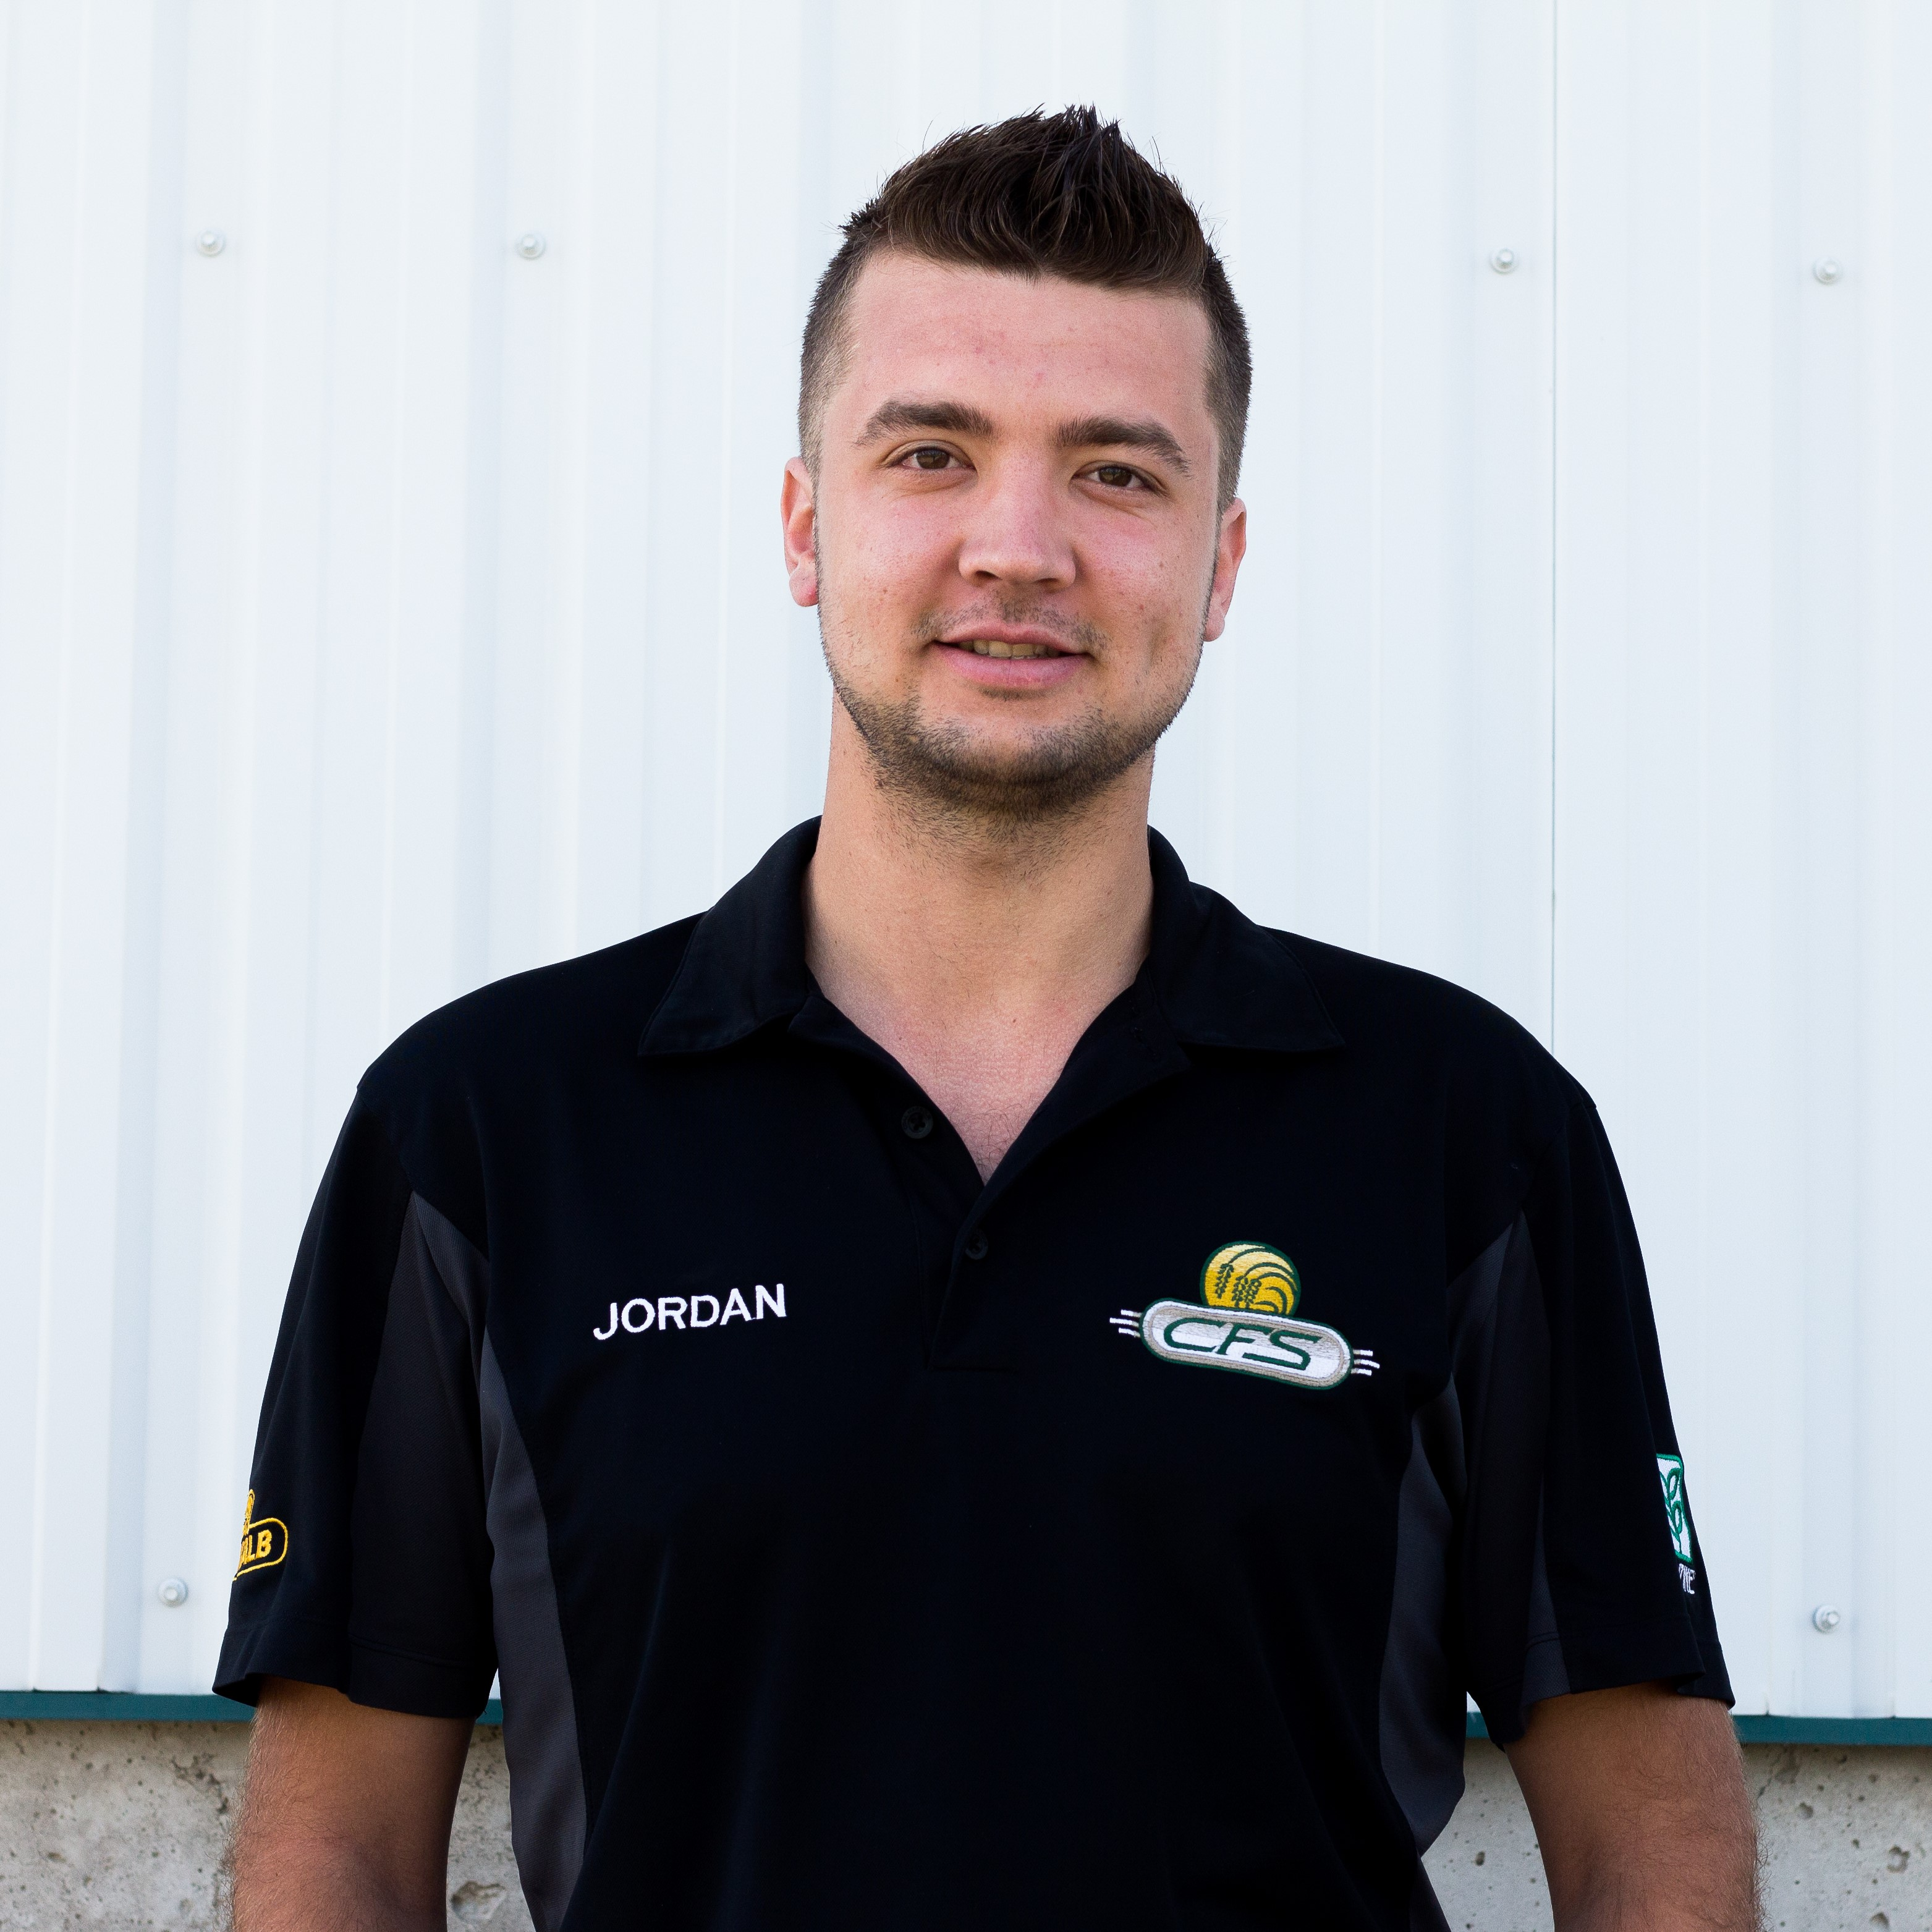 Jordan DiefenbacherSales and Service Jordan grew up on a dairy farm outside of Listowel. He began working for CFS as a sprayer operator in the spring of 2017. Jordan developed outstanding service to our customers and became an essential part of our sales and service team in the fall of 2018 to ensuring our customers receive the best products and results.